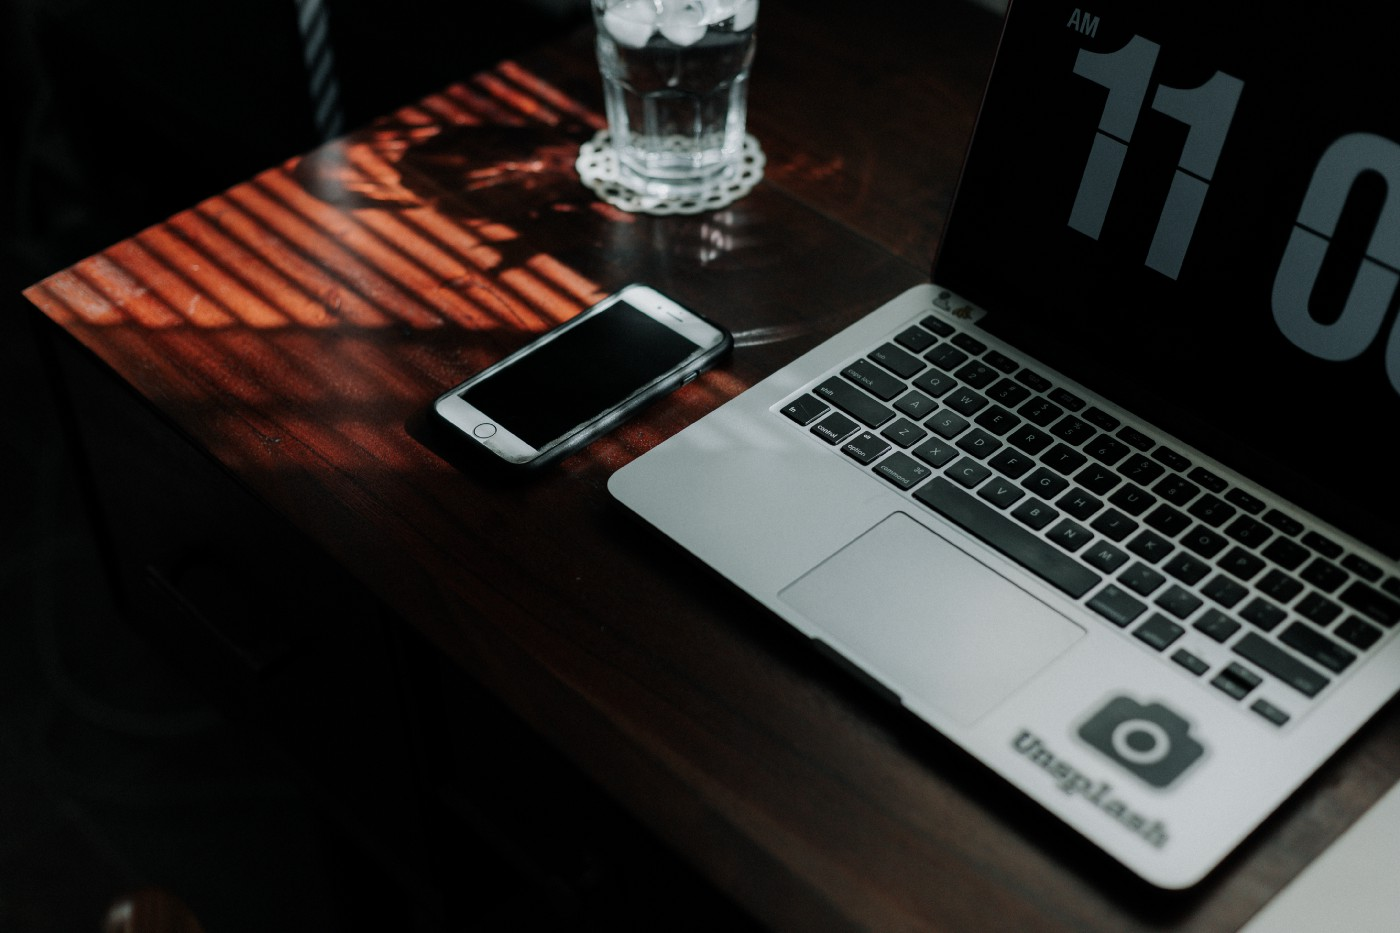 Phone and laptop on table